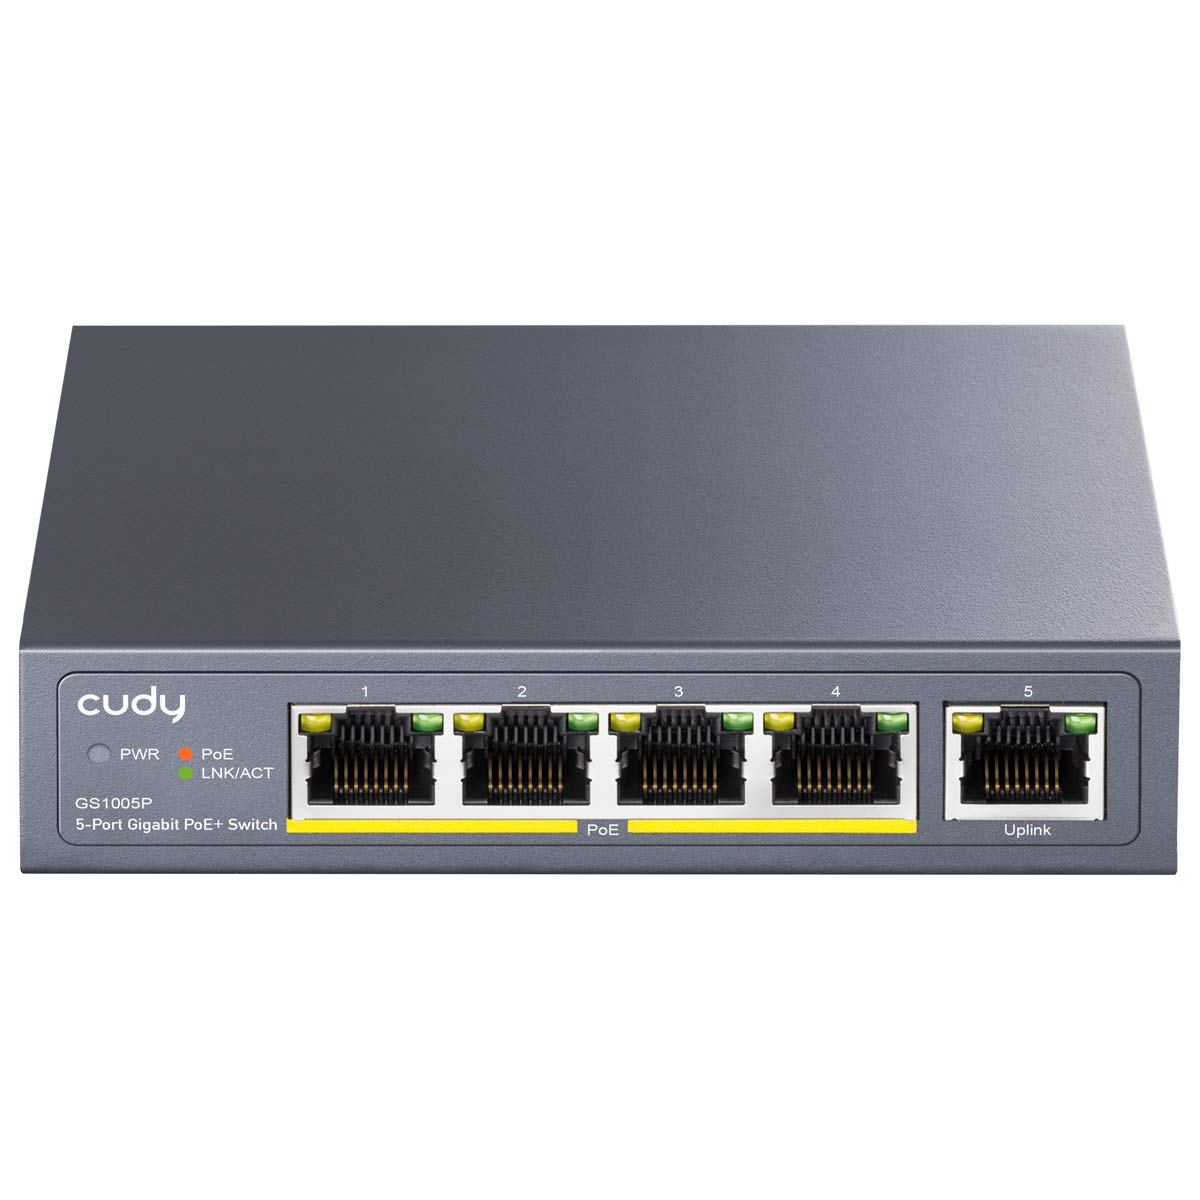 Cudy GS1005P 5 Port Gigabit Ethernet Unmanaged PoE+ Switch, with 4 x PoE+ @ 60W, Desktop/Wall, Sturdy Metal Fanless Housing, 802.3af, 802.3at, Shielded Ports, Traffic Optimization, Plug and Play